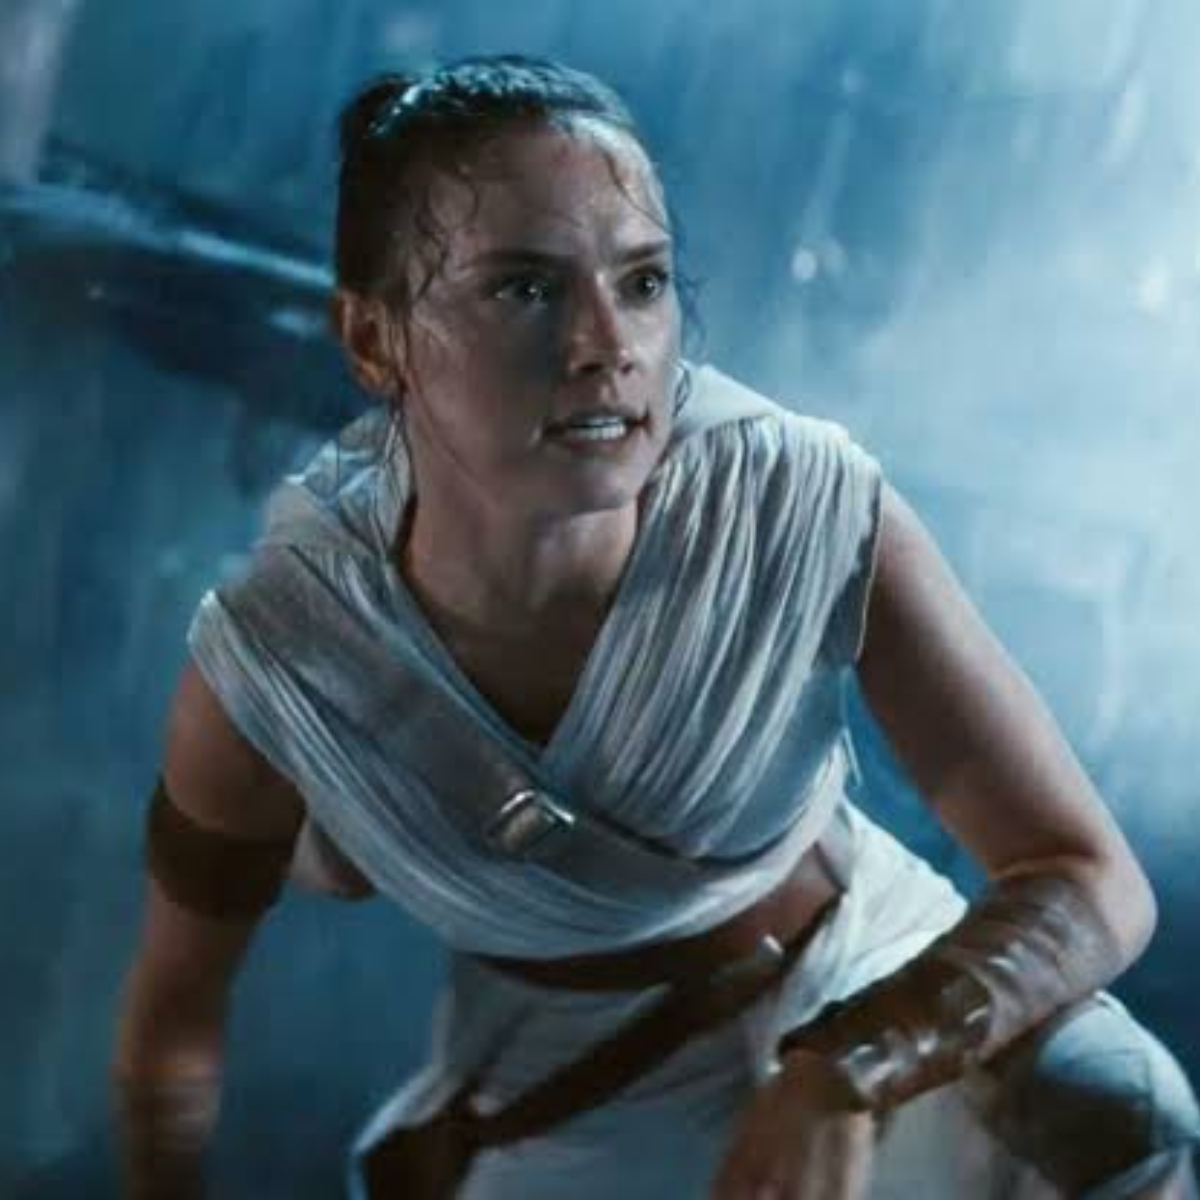 Star Wars Rise Of Skywalker Box Office Collection Day 1 Us Jj Abrams Movie Fails To Beat Avengers Endgame Pinkvilla